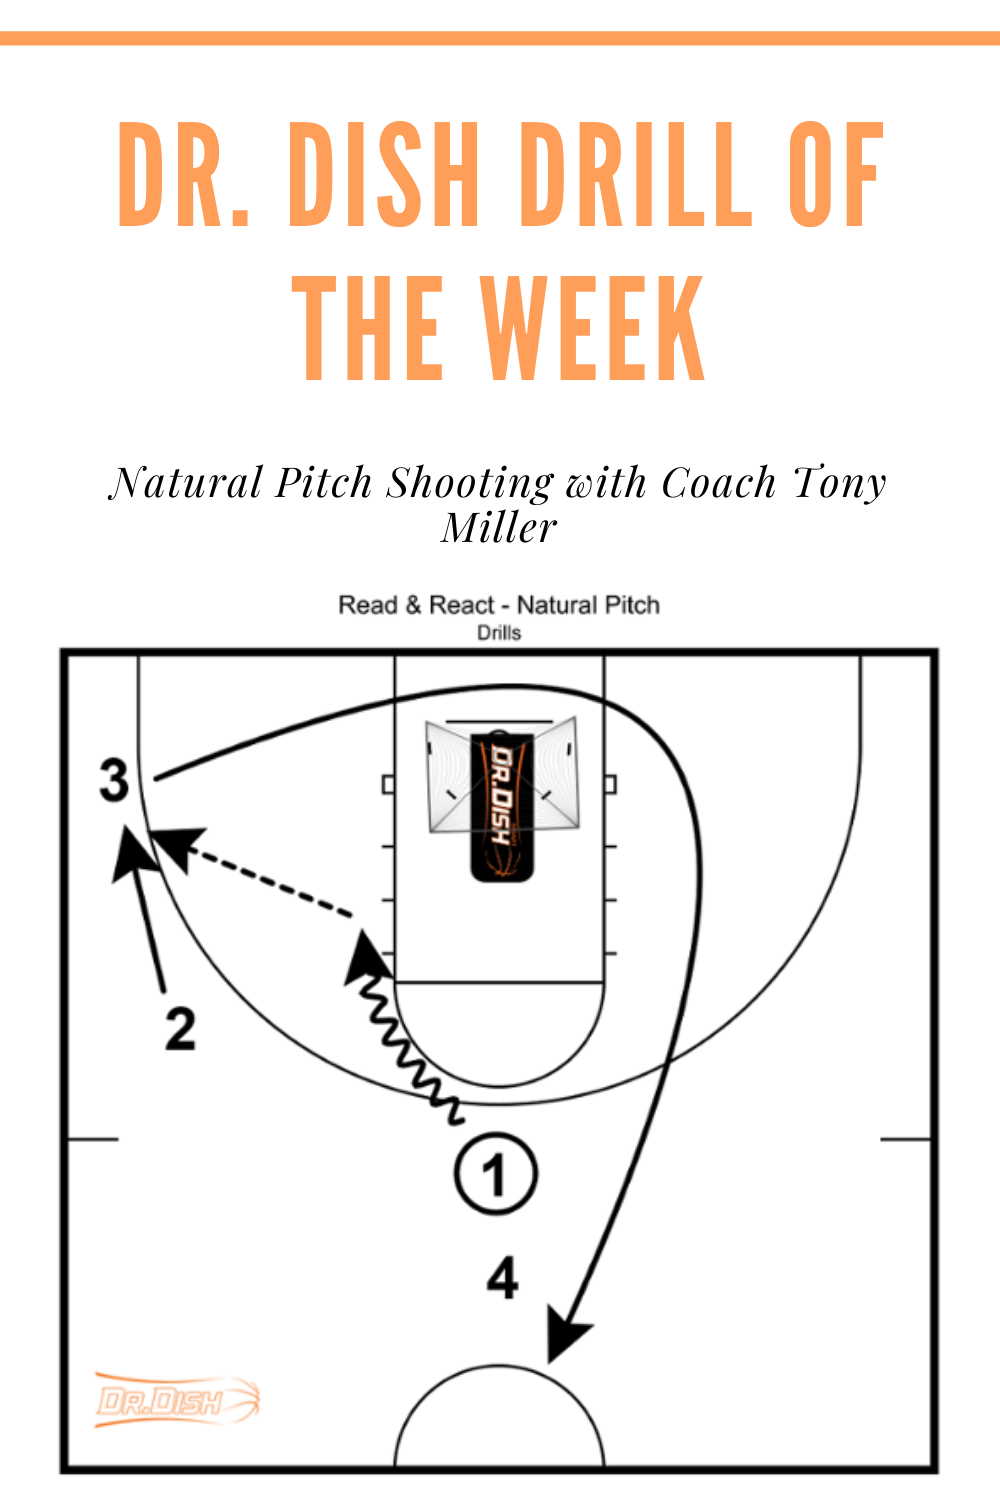 Dr Dish Basketball Drill Of The Week Natural Pitch Shooting With Coach Tony Miller In 2020 Basketball Drills Drill Basketball Shooting